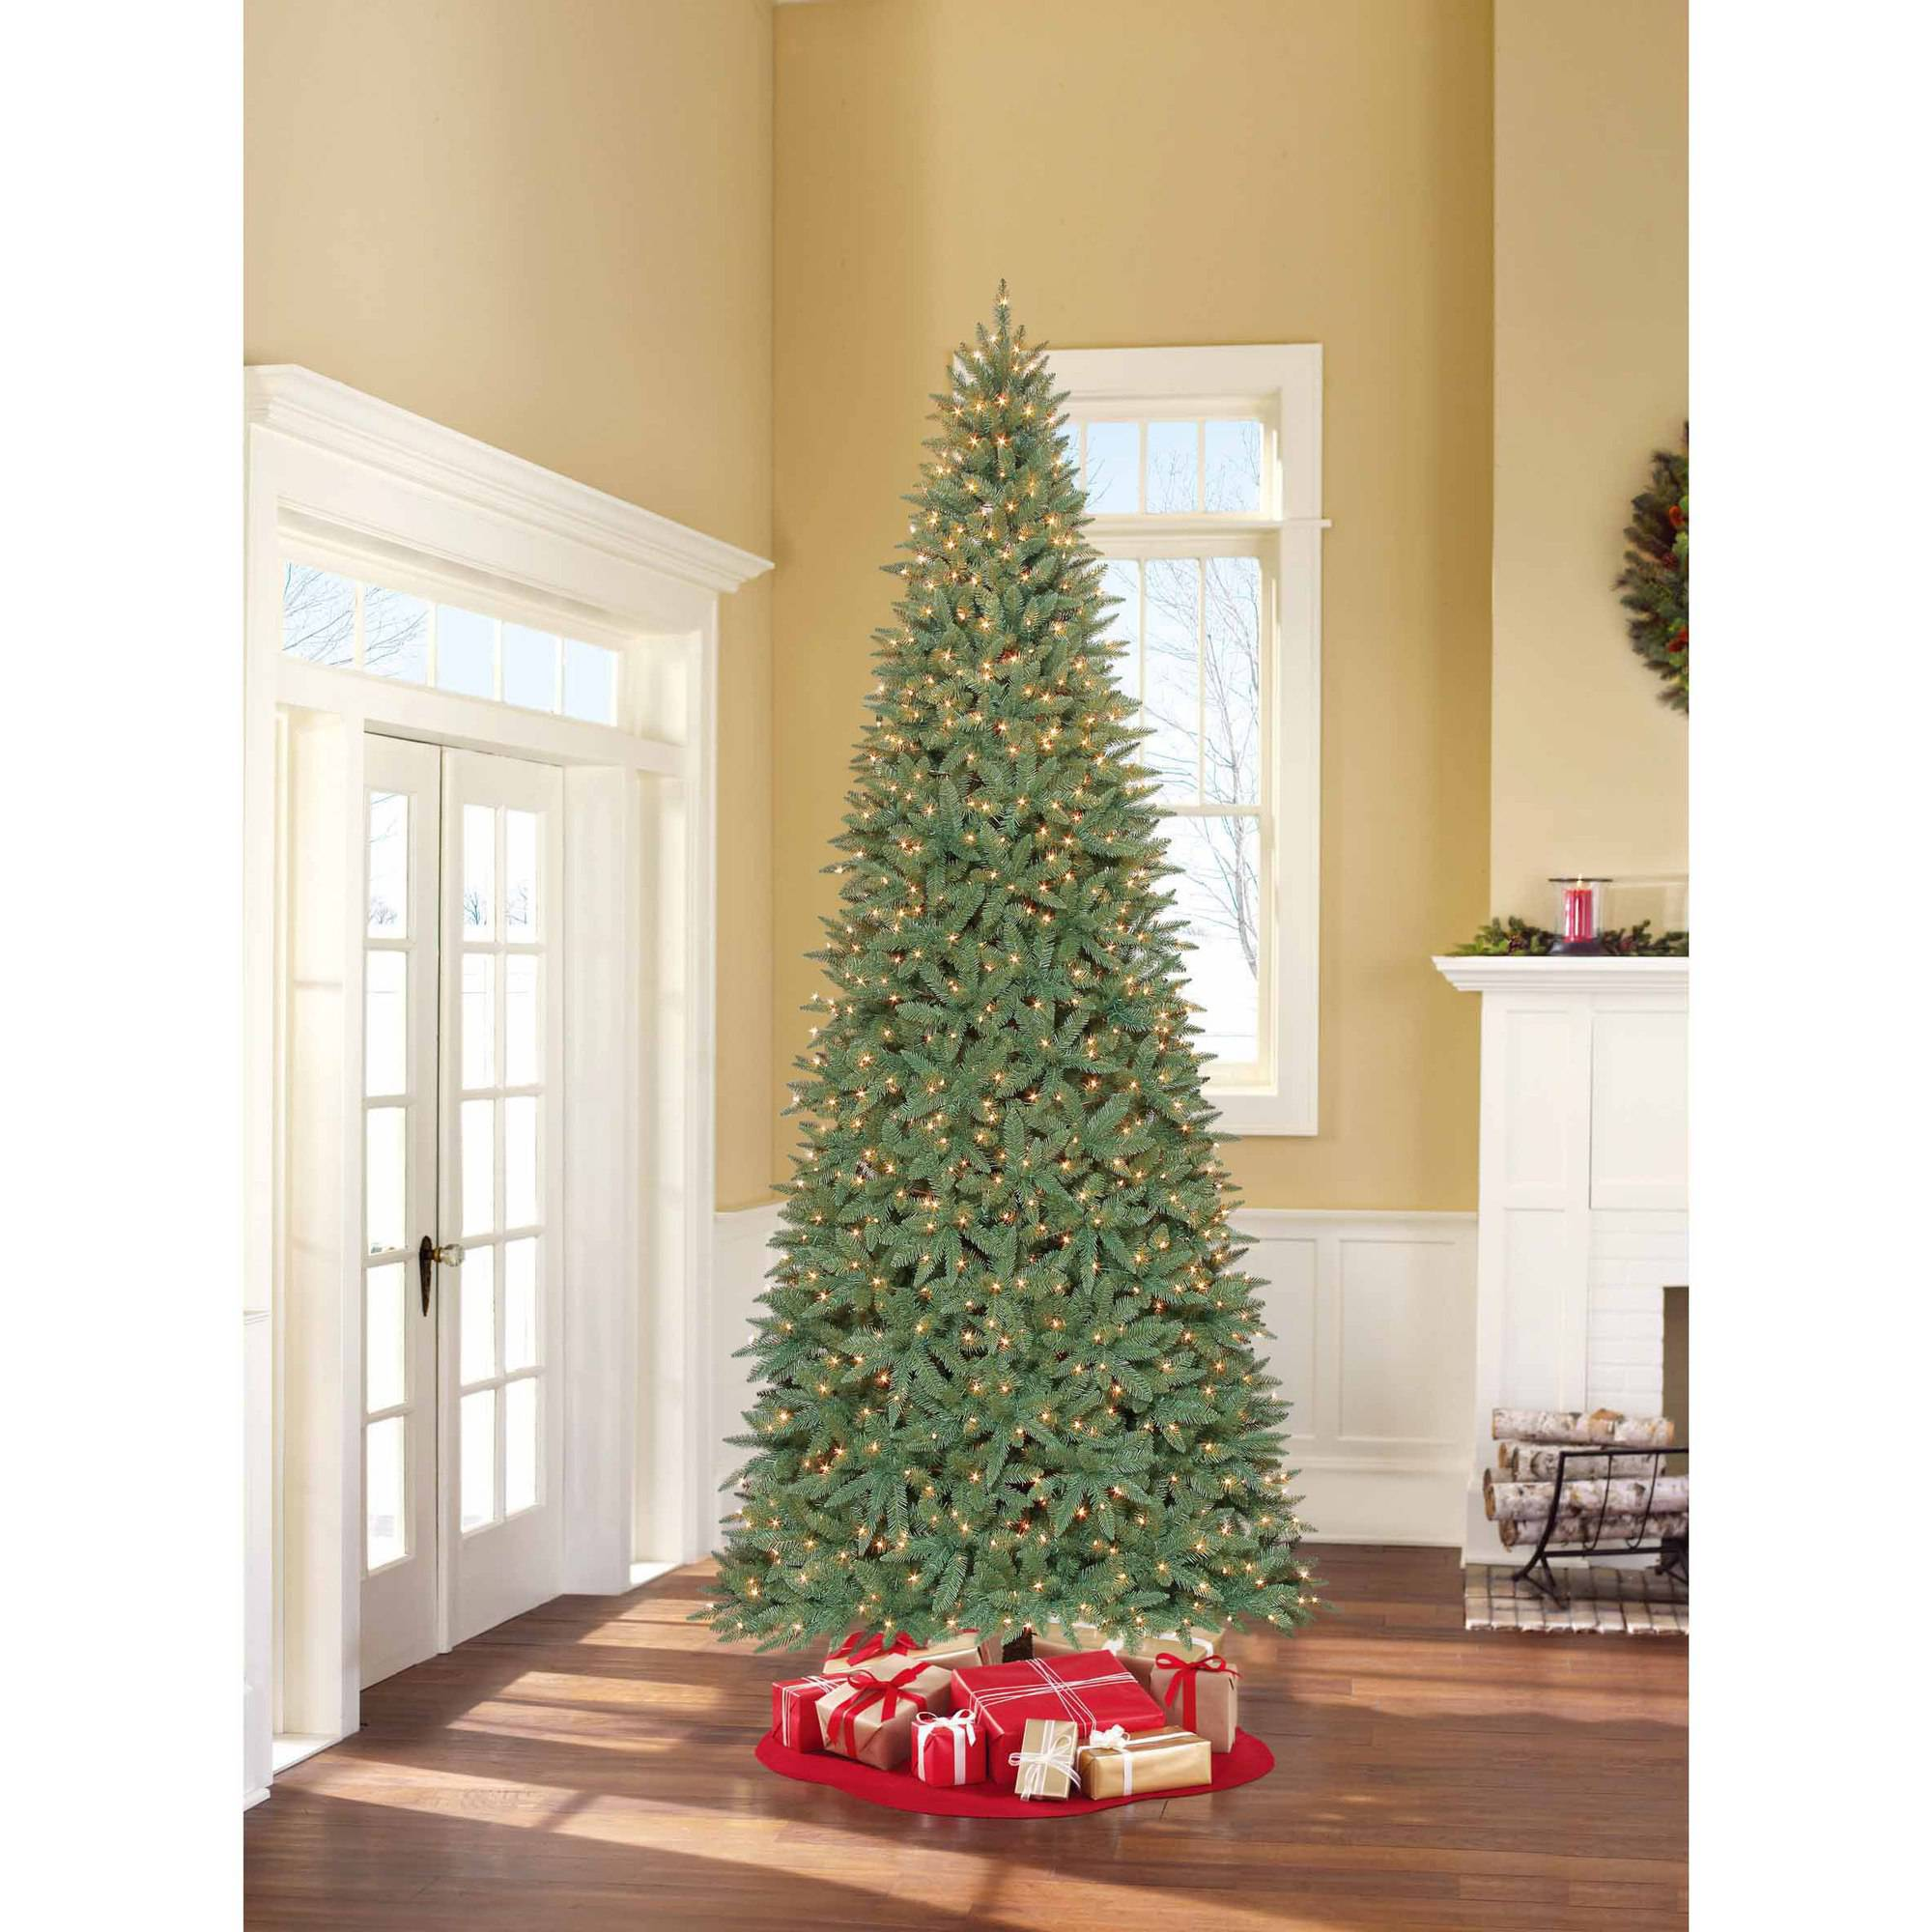 national tree pre lit 6 12 kingswood fir hinged pencil artificial christmas tree with 250 multi lights walmartcom - 8 Ft Christmas Tree